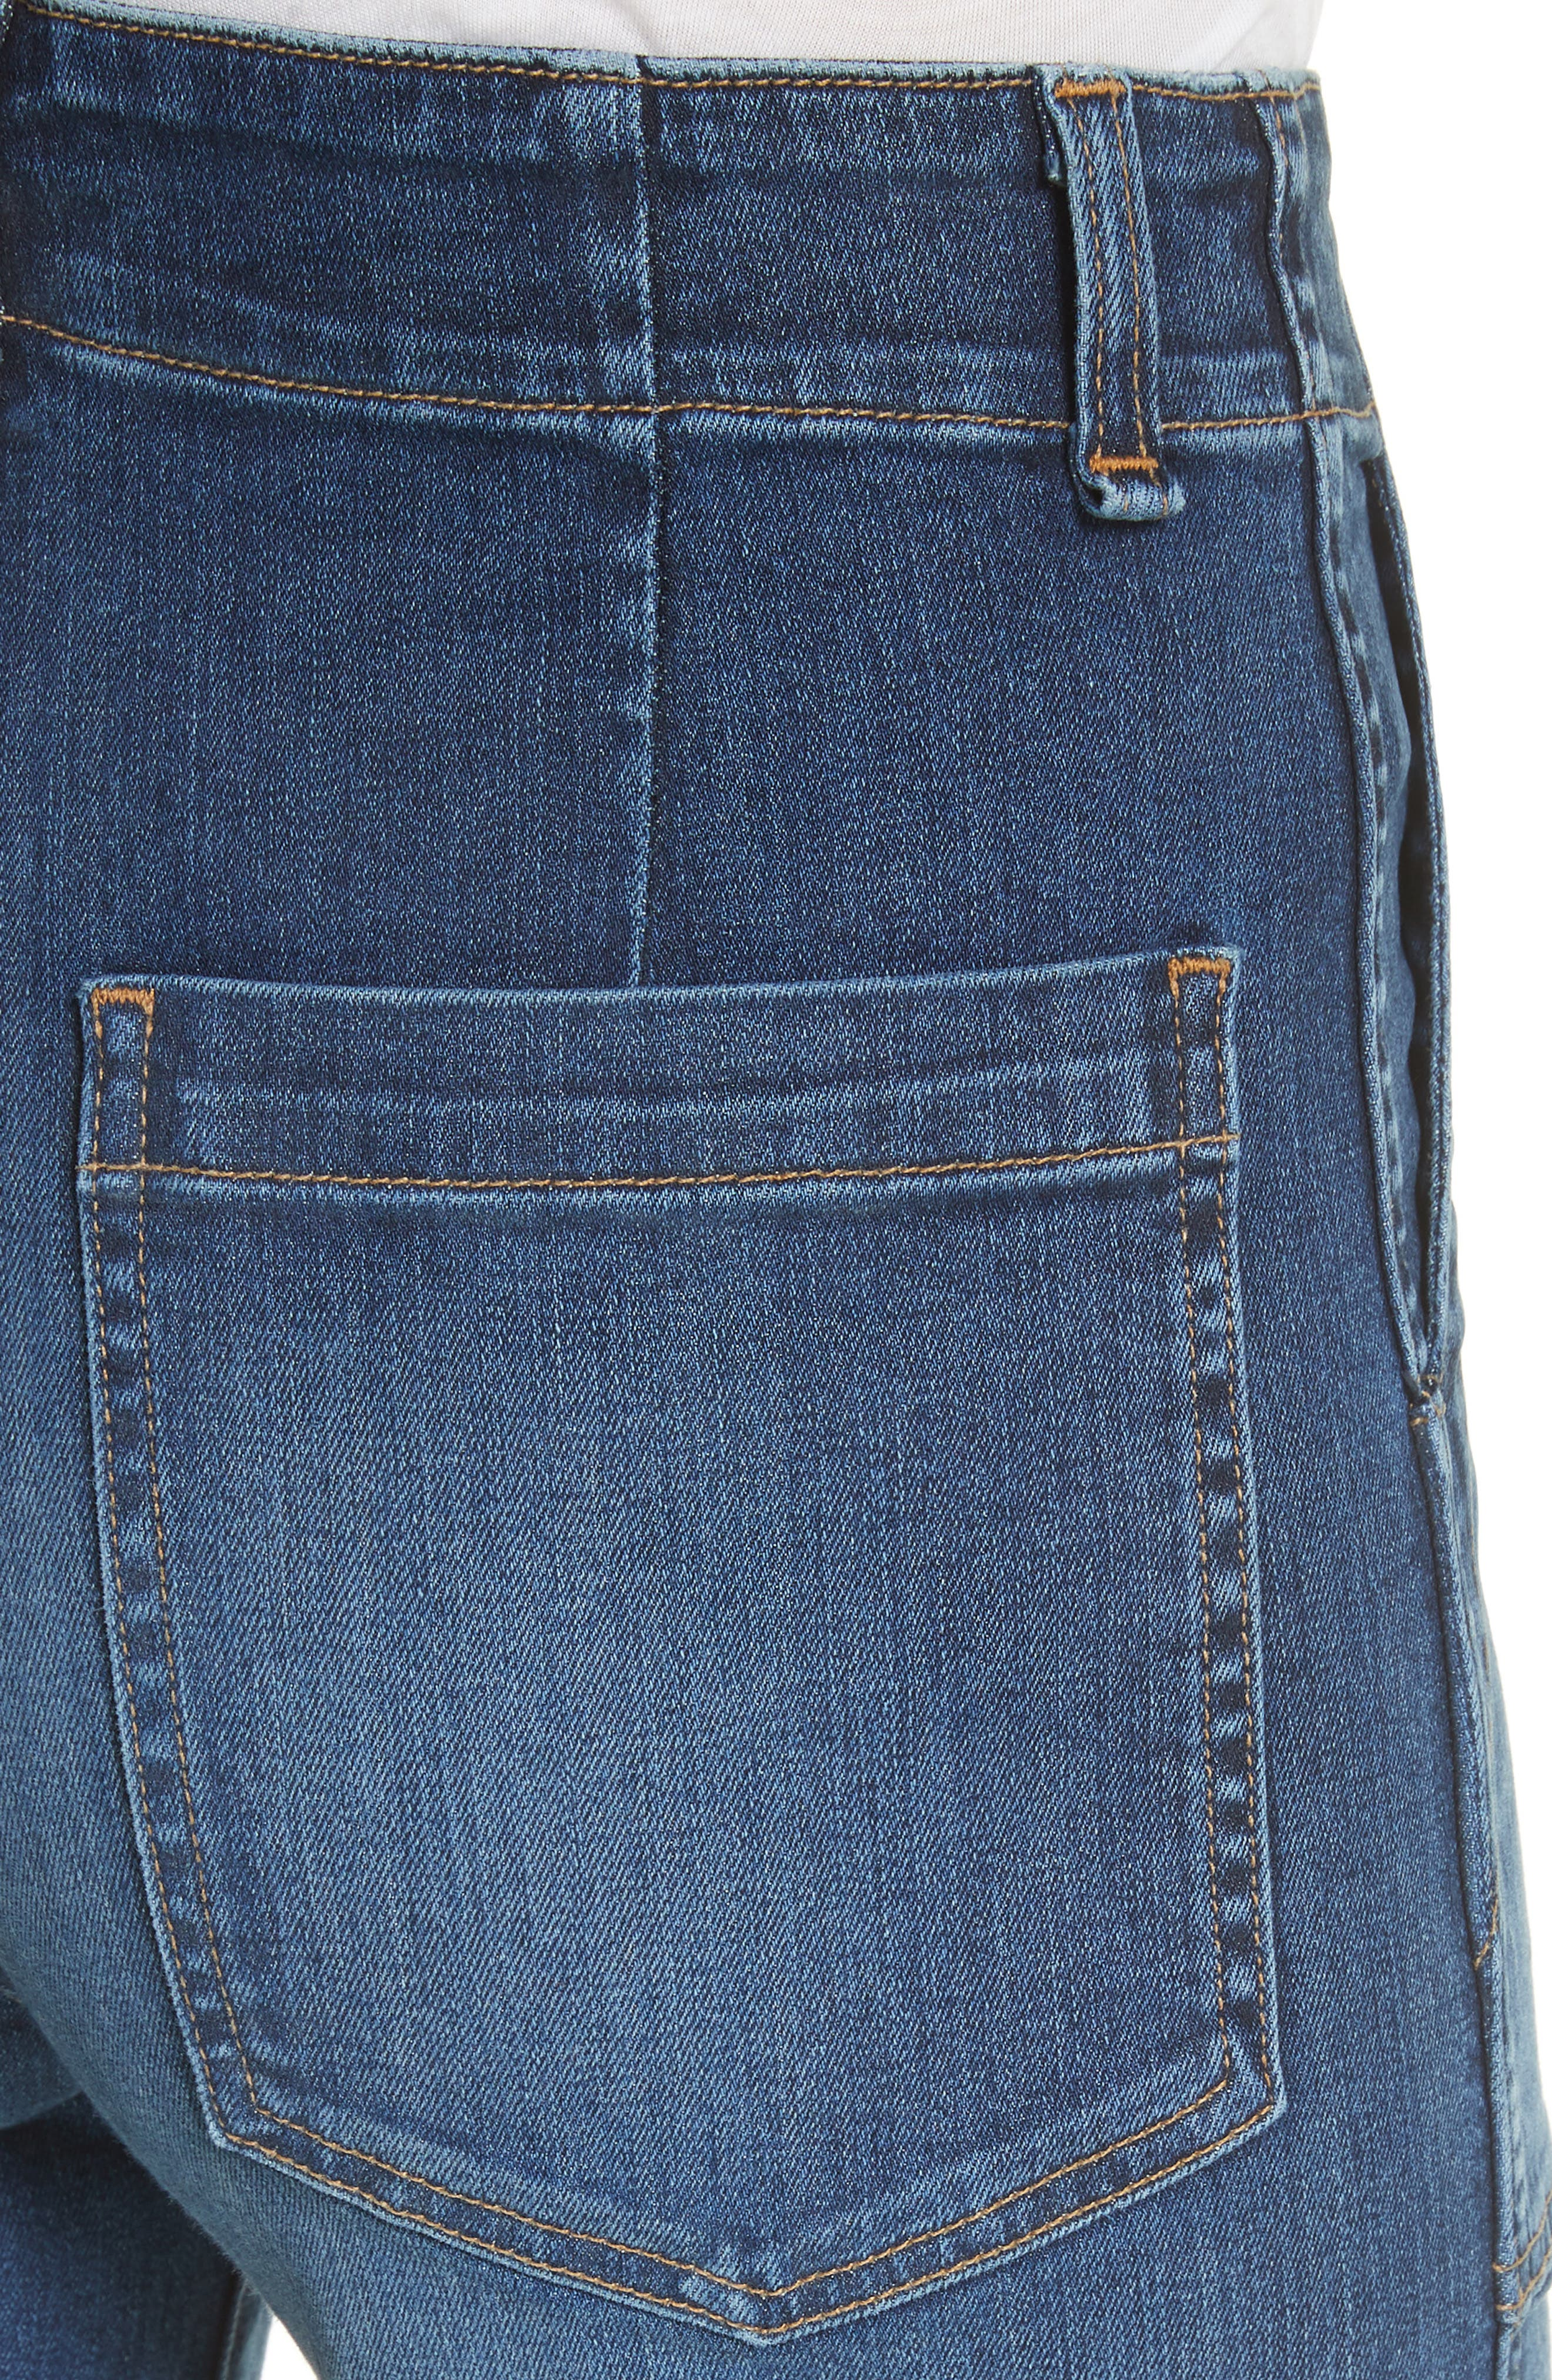 Lou Released Hem Gaucho Jeans,                             Alternate thumbnail 4, color,                             411